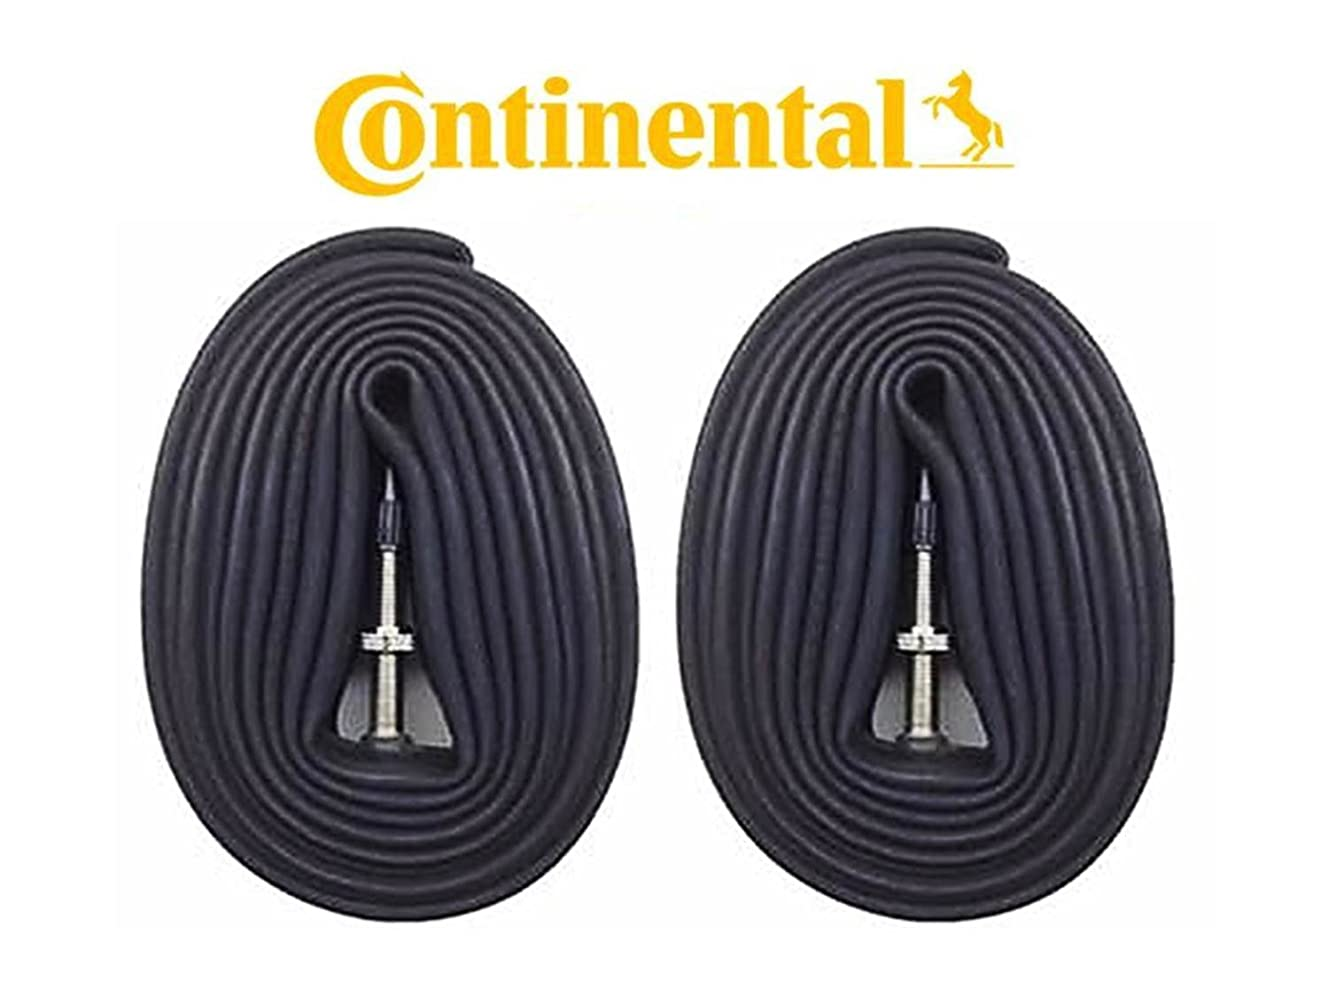 Continental New 2 Pack 26